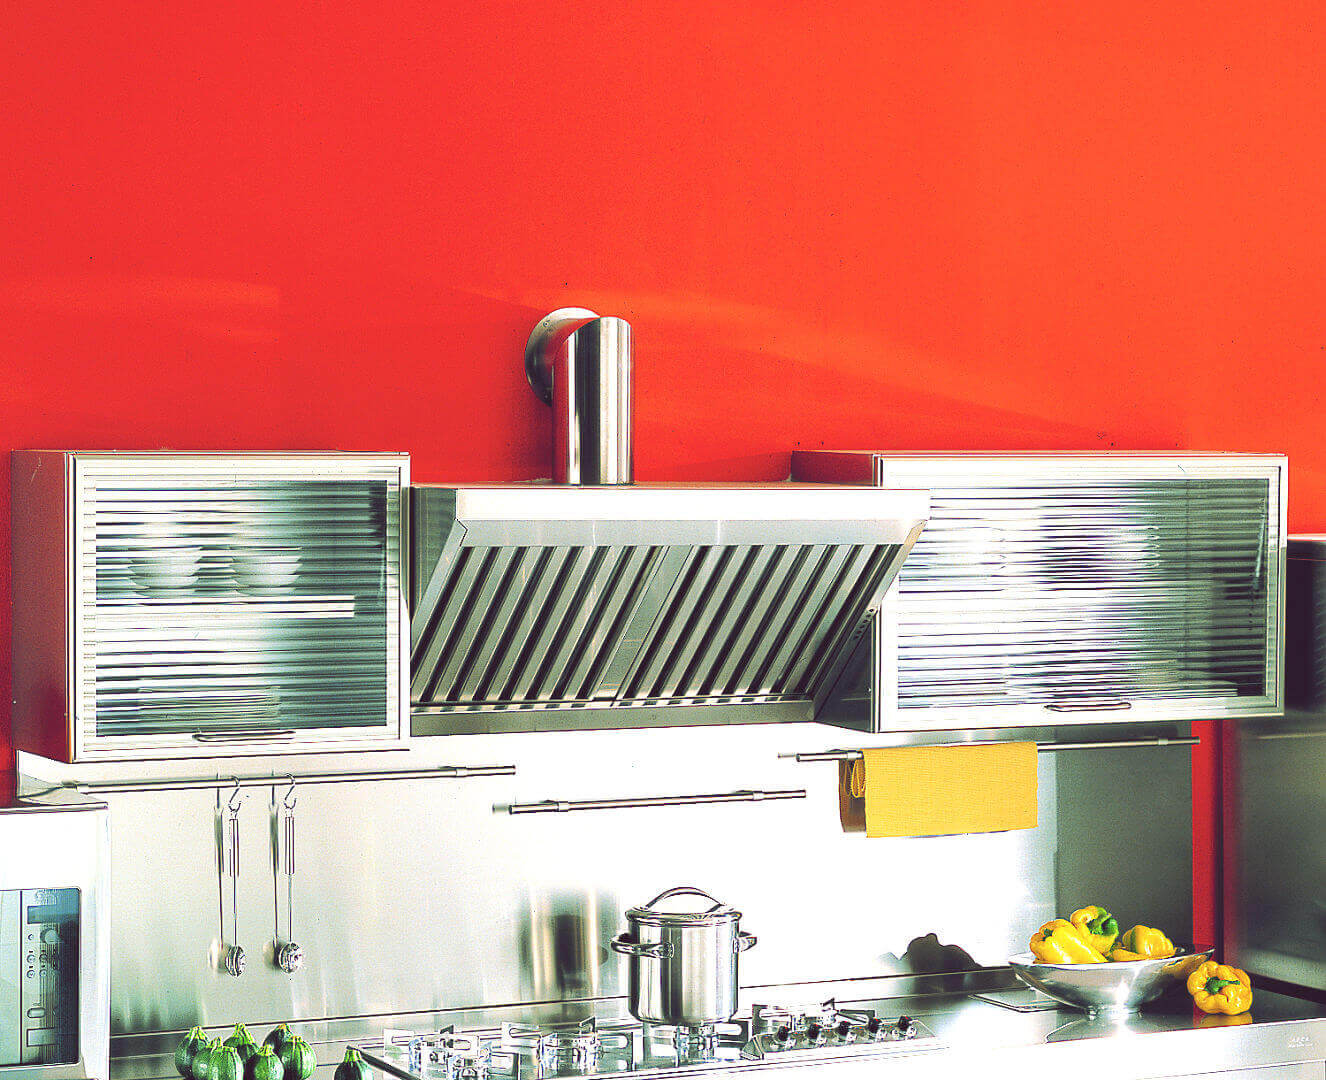 Arca Cucine Italy - Home Kitchen Stainless Steel - Spring - Wall cabinets and hood